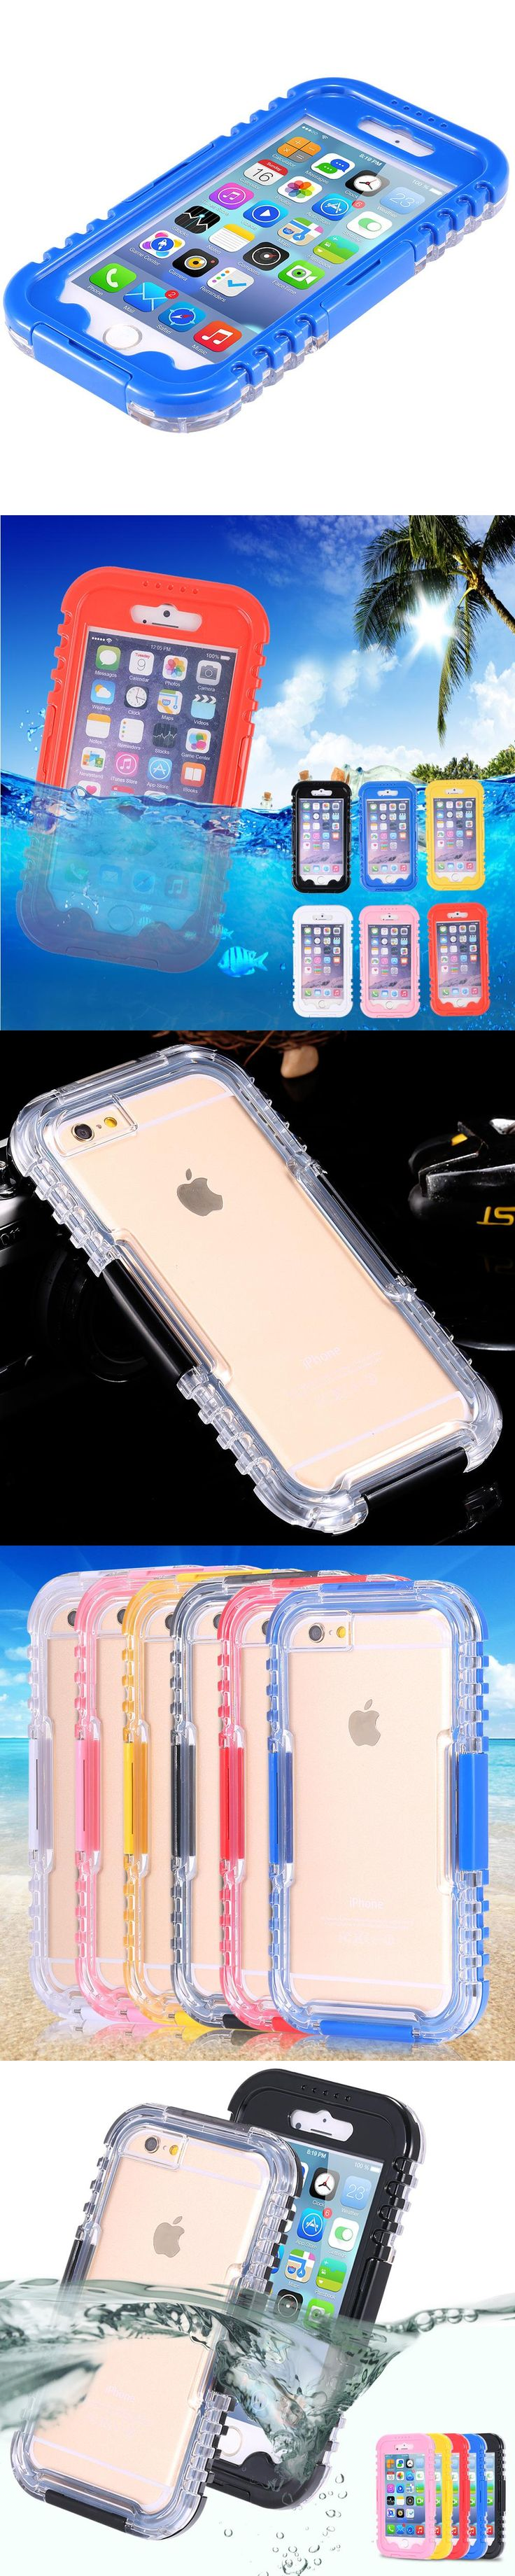 For Apple iPhone 6 Case 6S Plus PC+Silicone Shockproof Waterproof Underwater Swimming Cover for iPhone 7 IP7 Plus 8 Plus Cases